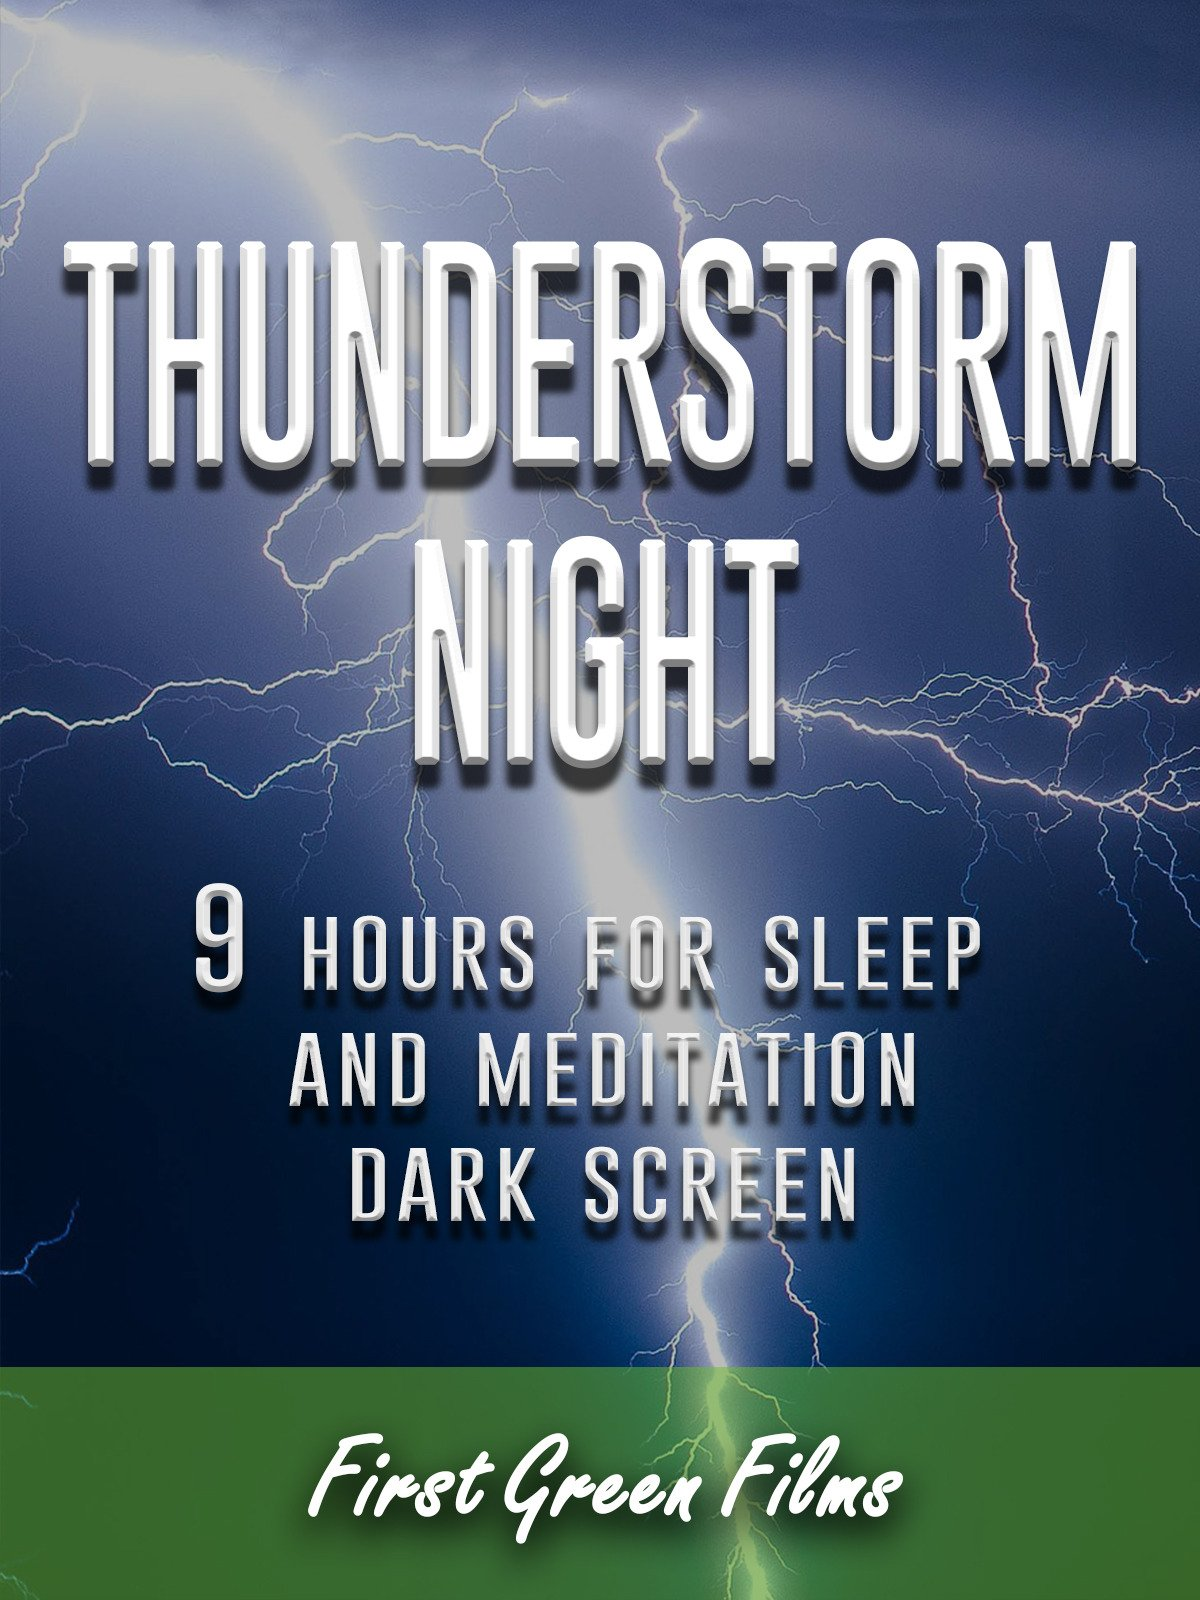 Thunderstorm night, 9 hours for Sleep and Meditation, dark screen on Amazon Prime Instant Video UK